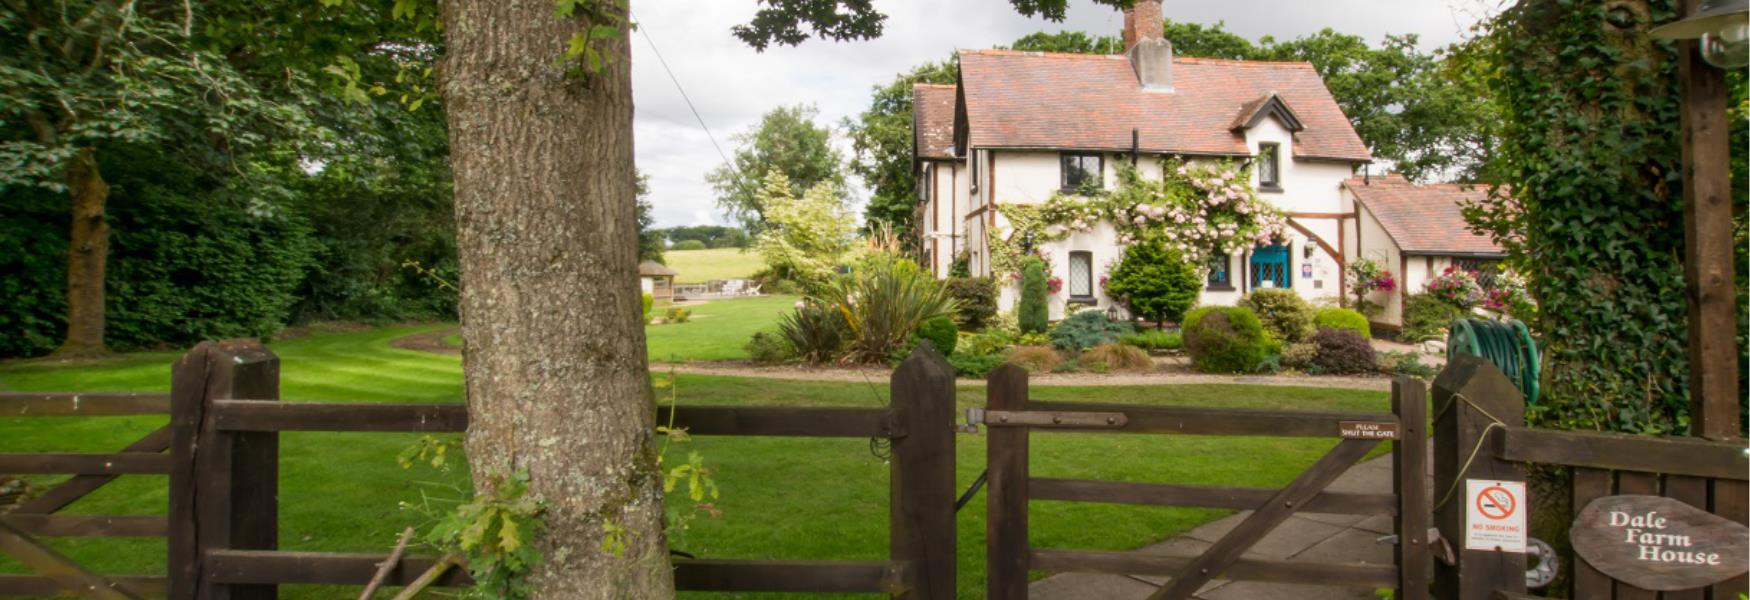 Farm House Accommodation Stay in the New Forest